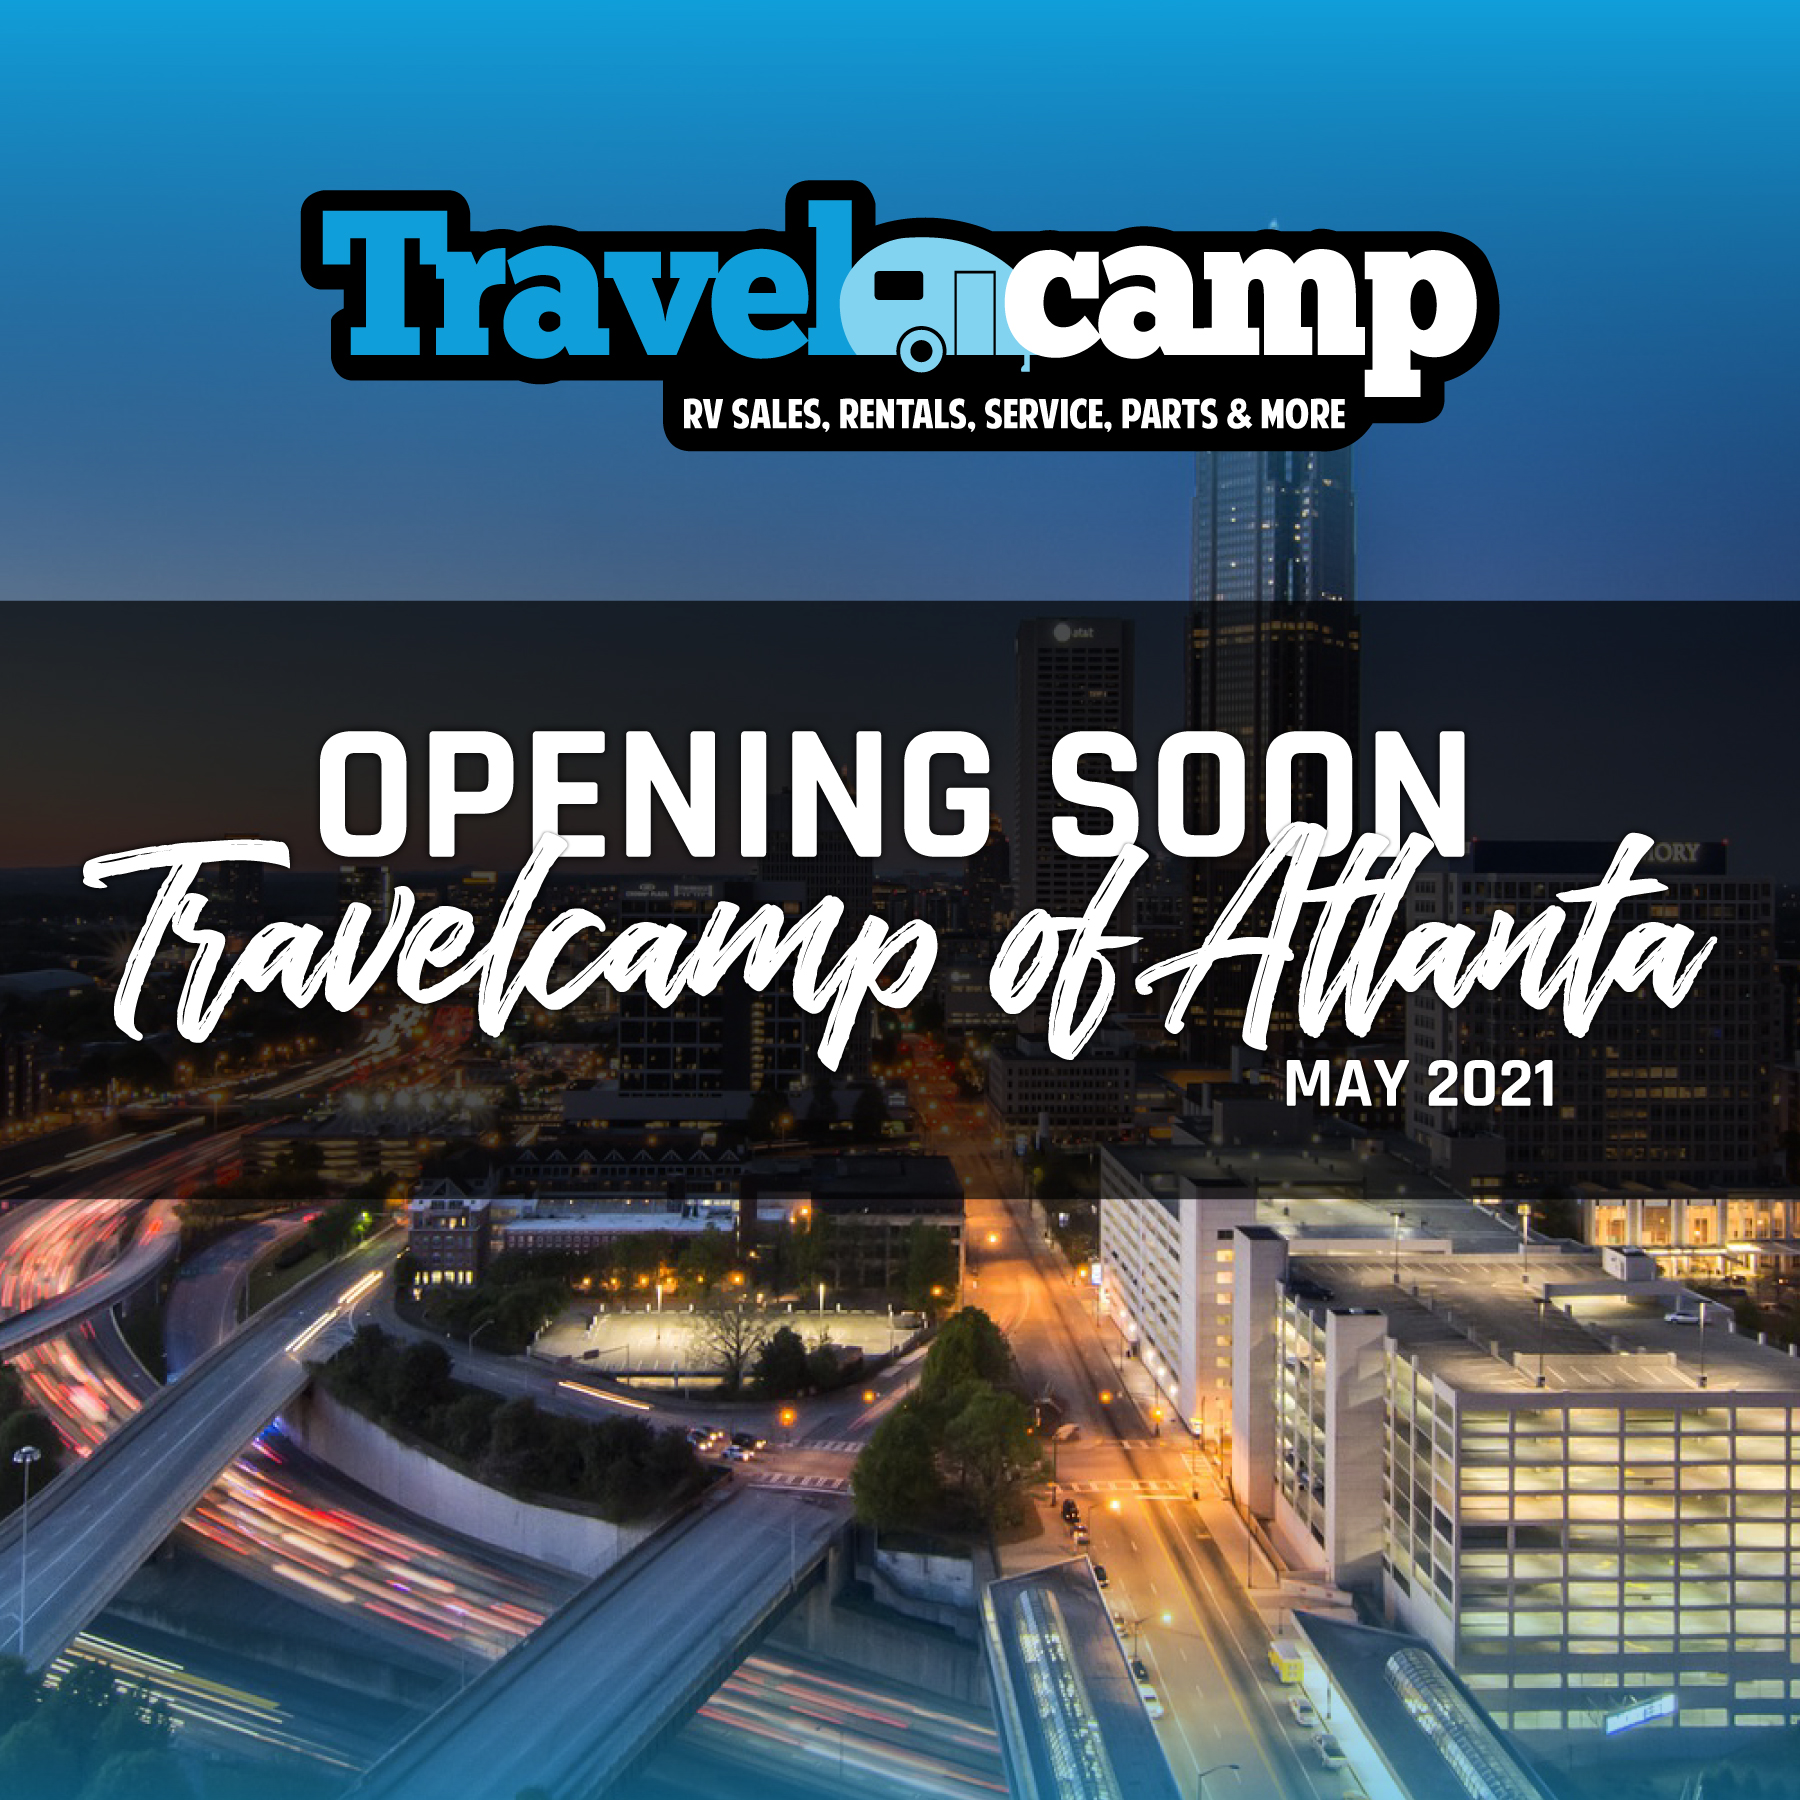 Soon to Open - Travelcamp of Atlanta